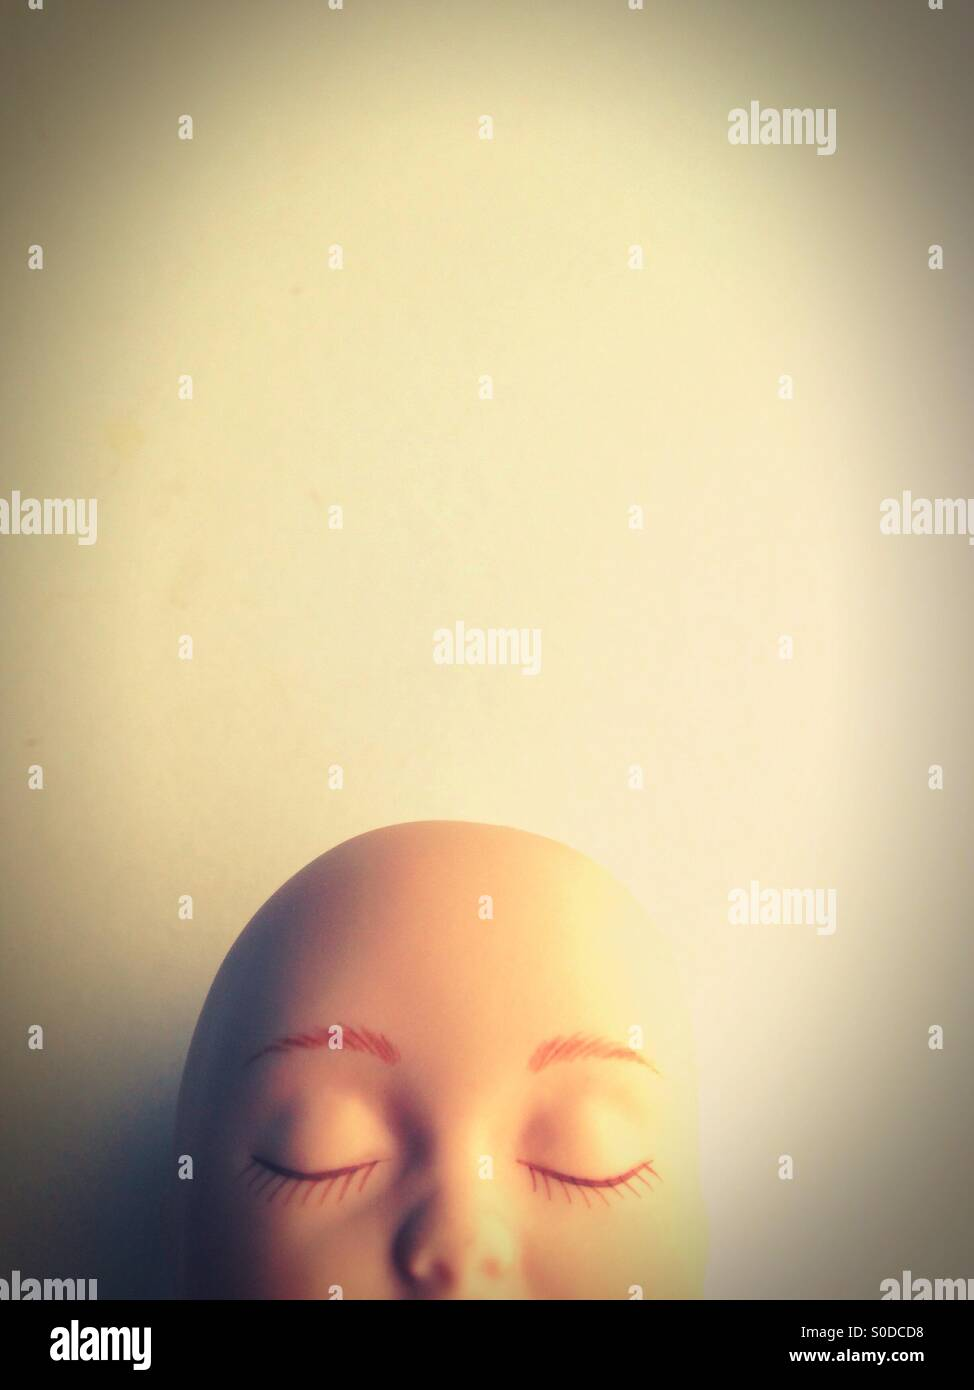 The top of a doll's bald head. - Stock Image